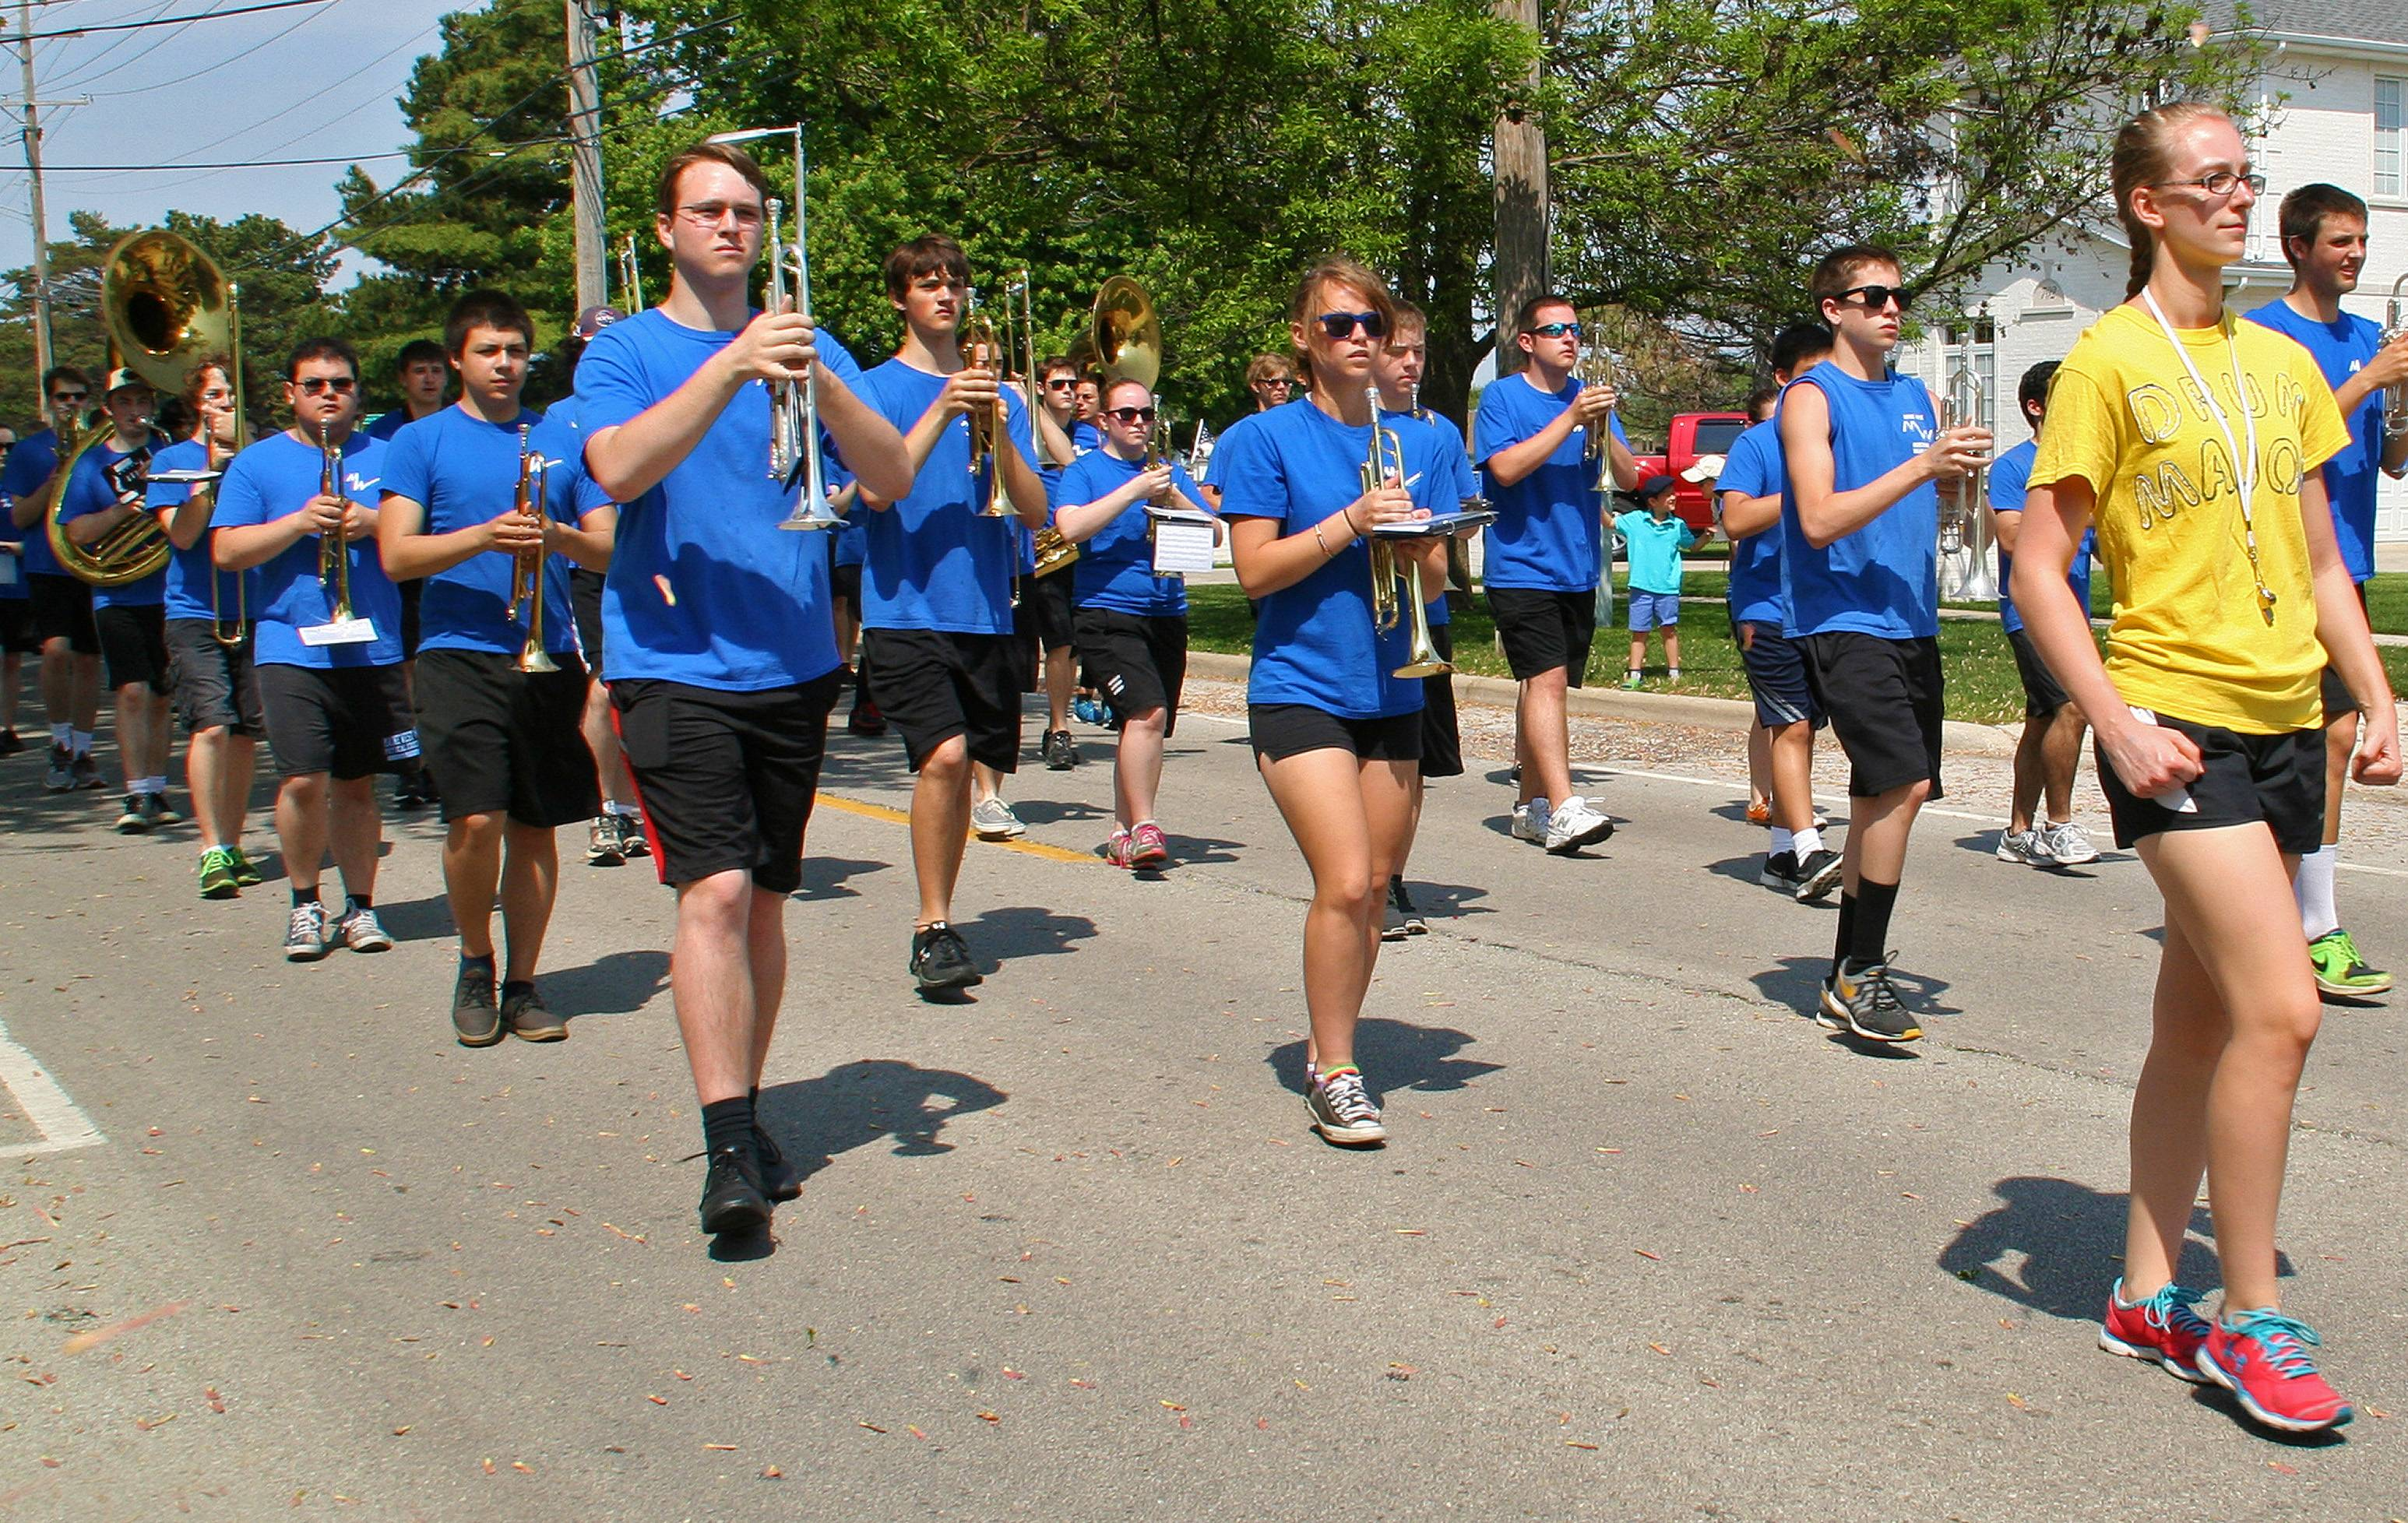 Drum Major Megan Bricks leads the Maine West High School Warriors Marching Band to the Memorial Day Ceremony at the Lake Park Memorial Pavilion on May 26.